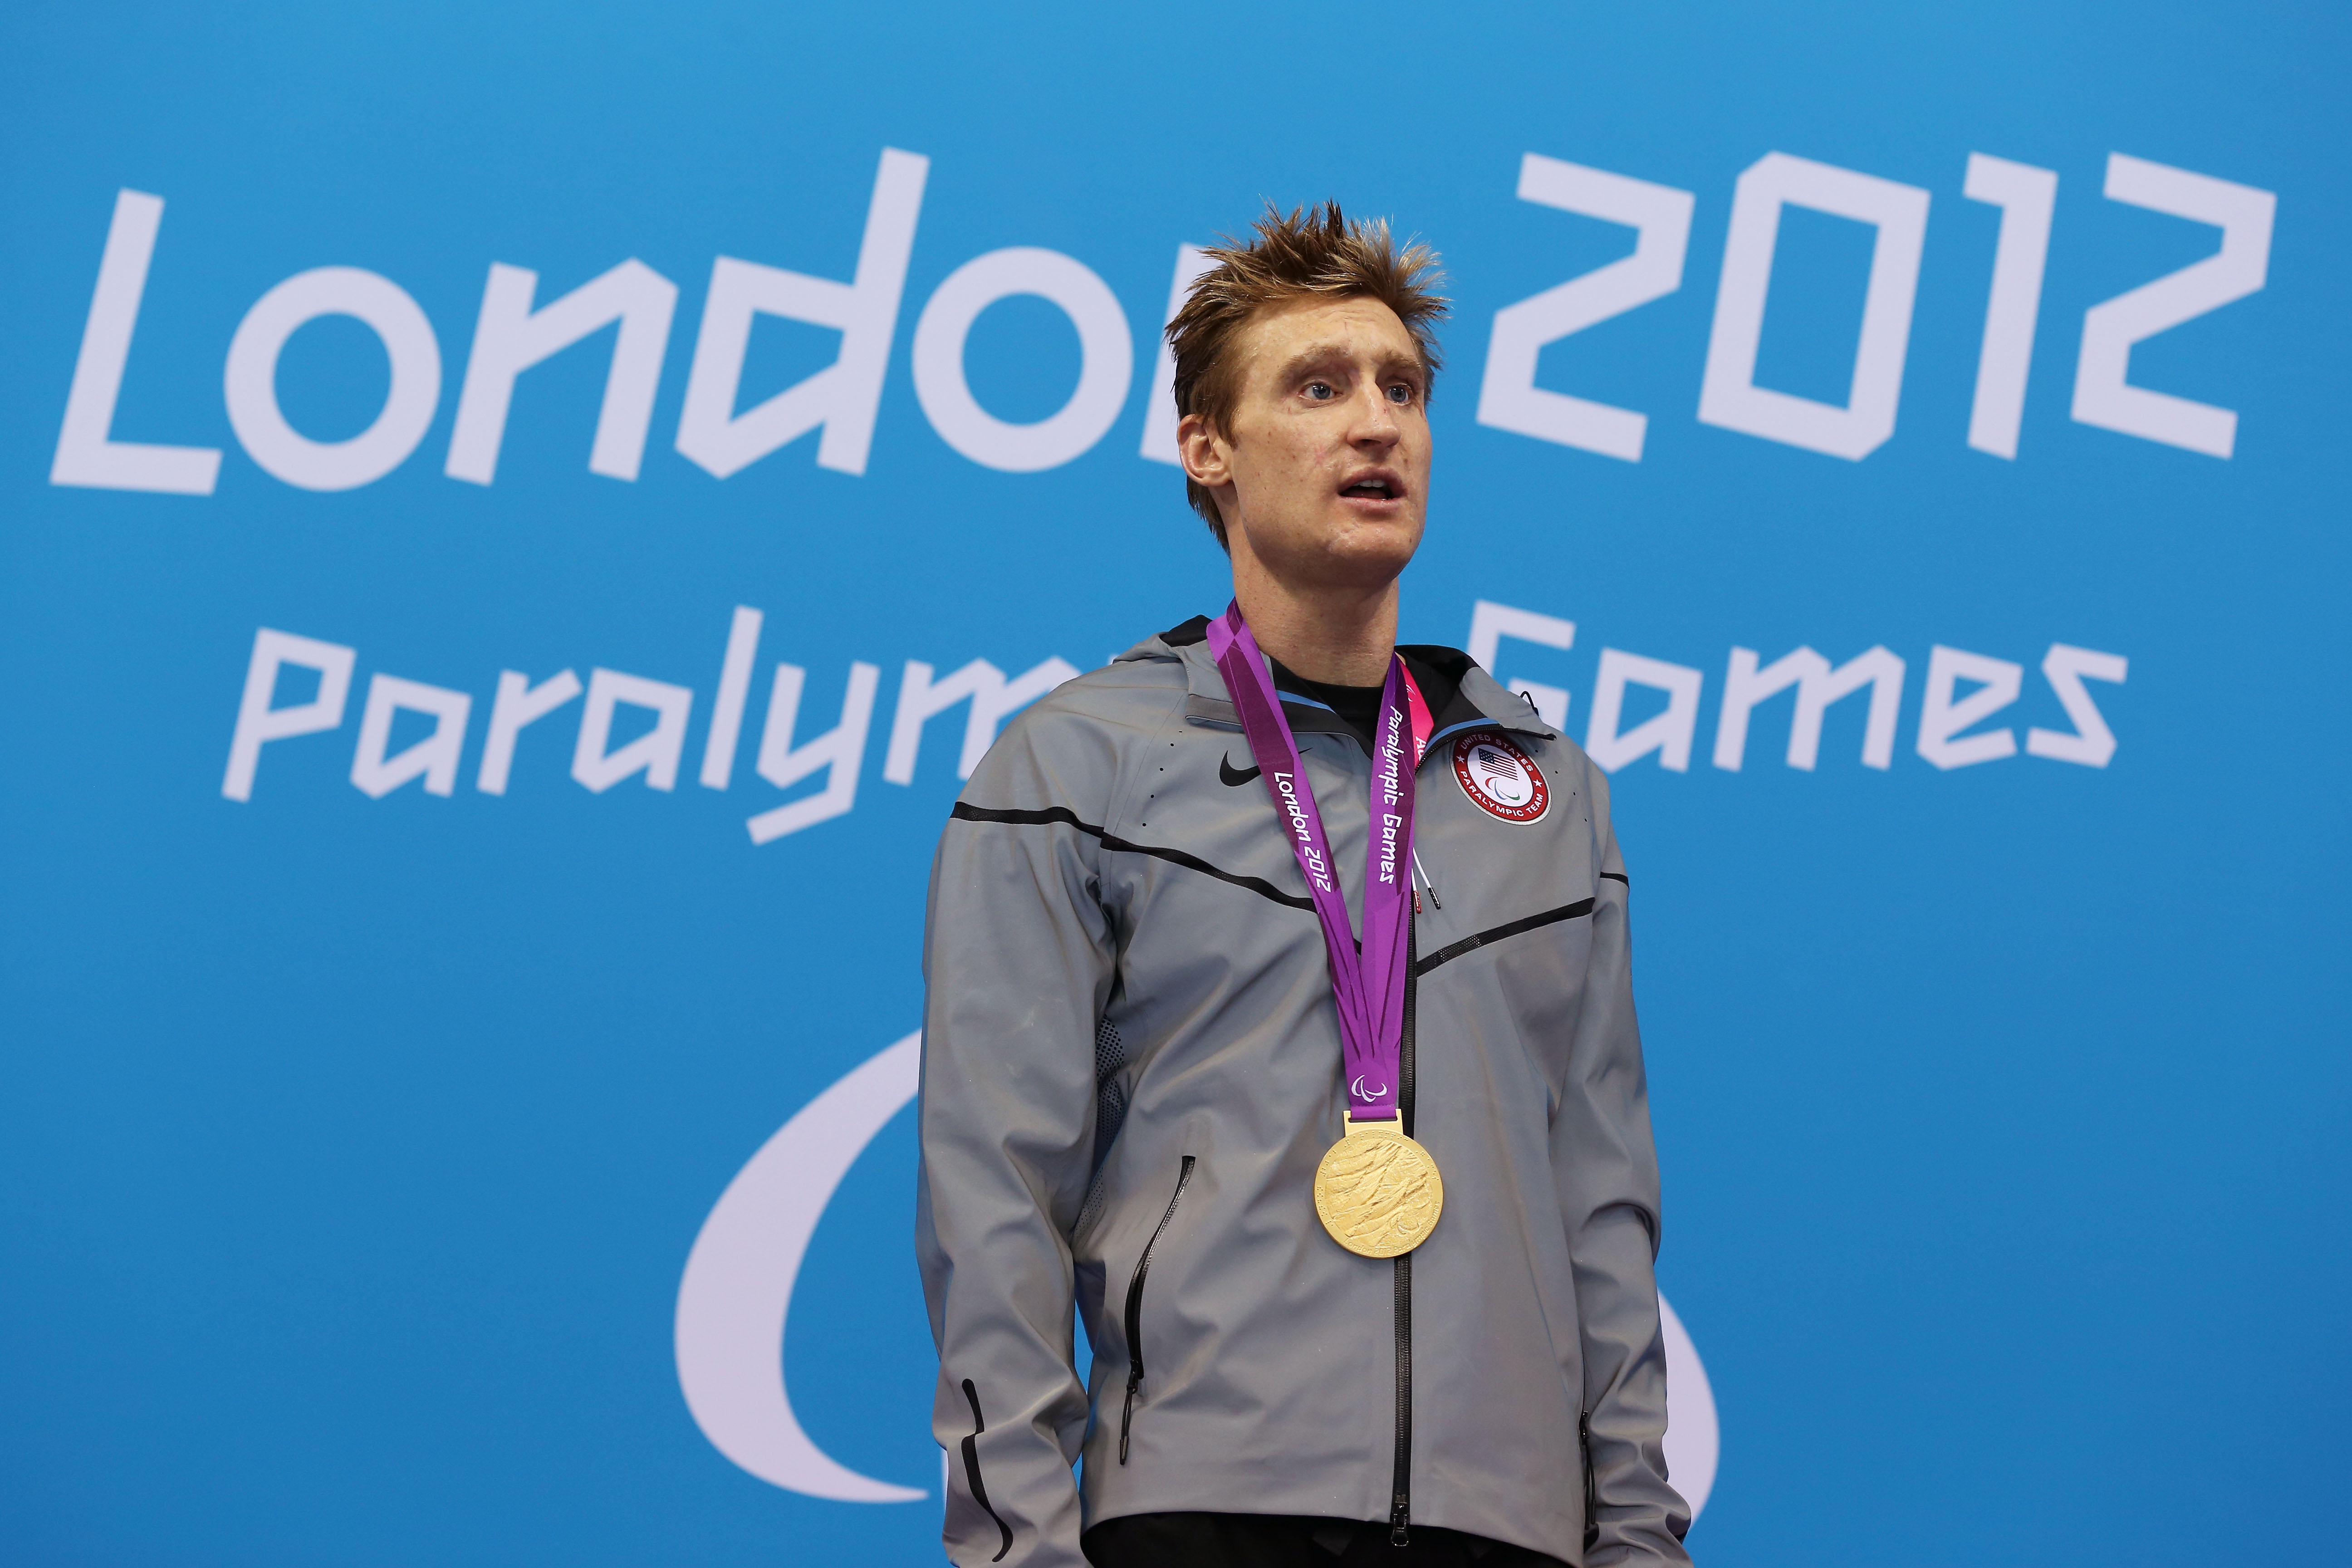 2012 London Paralympics - Day 9 - Swimming